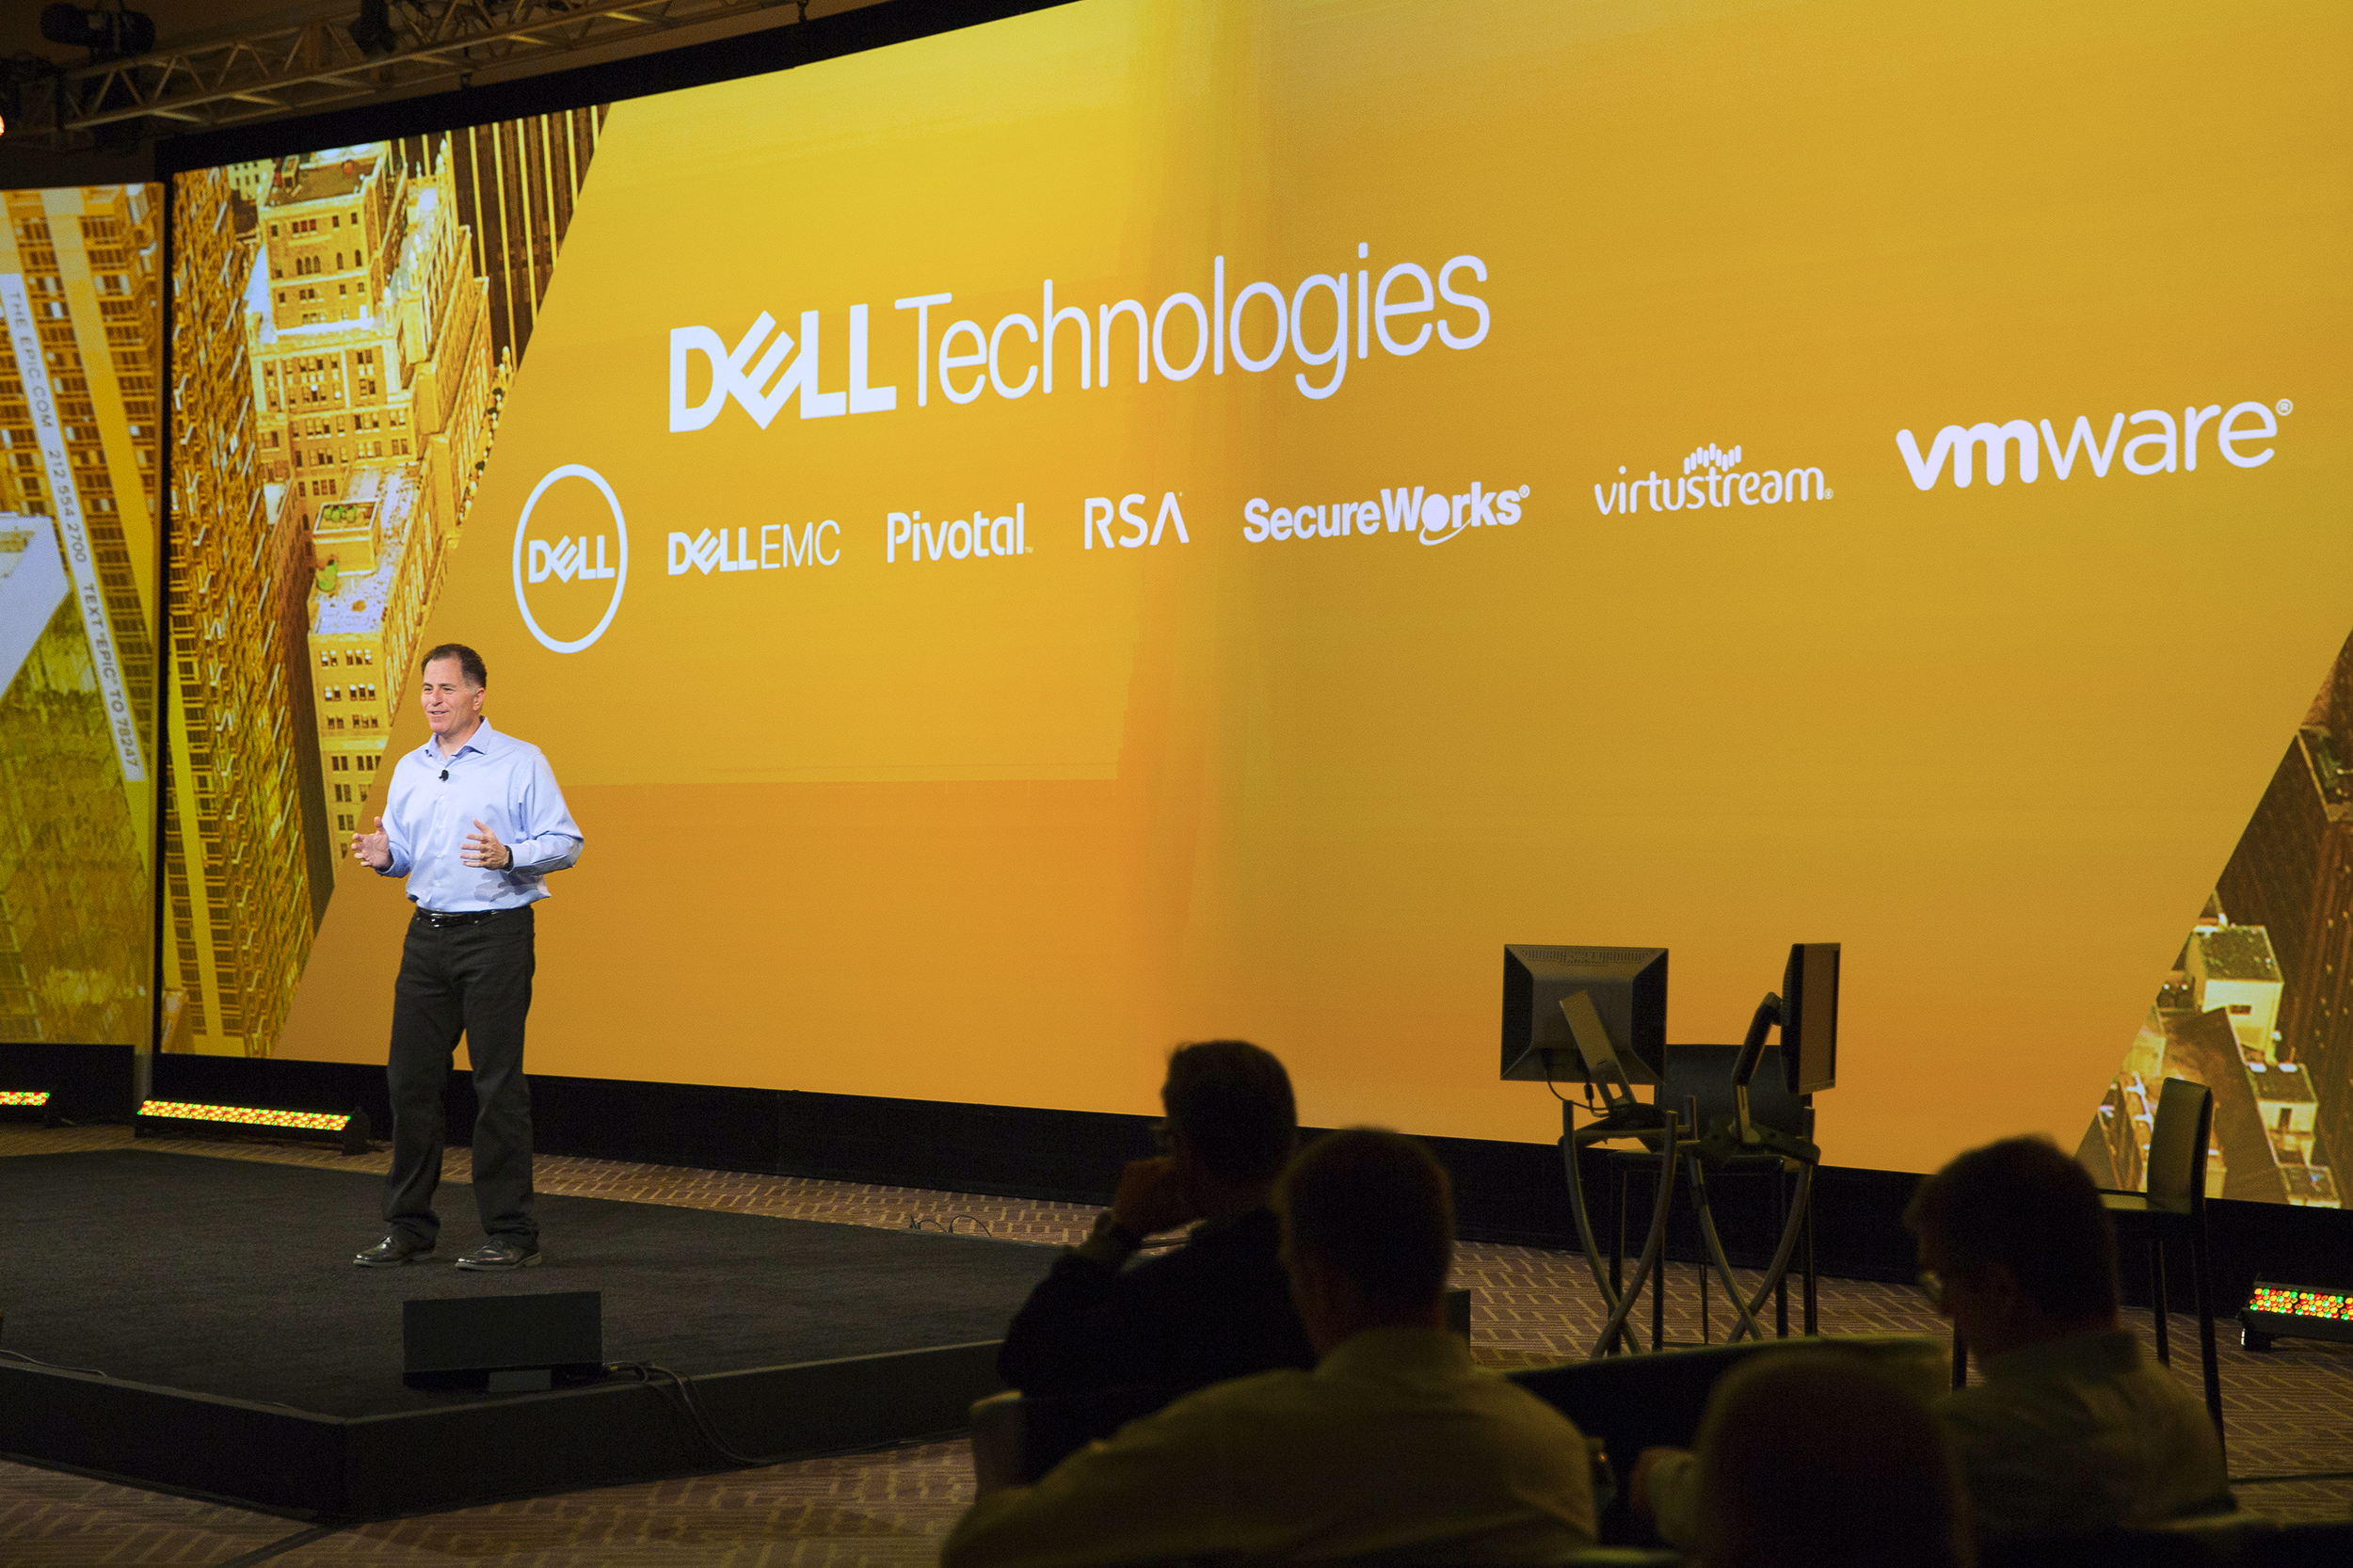 Michael Dell, CEO of Dell Technologies